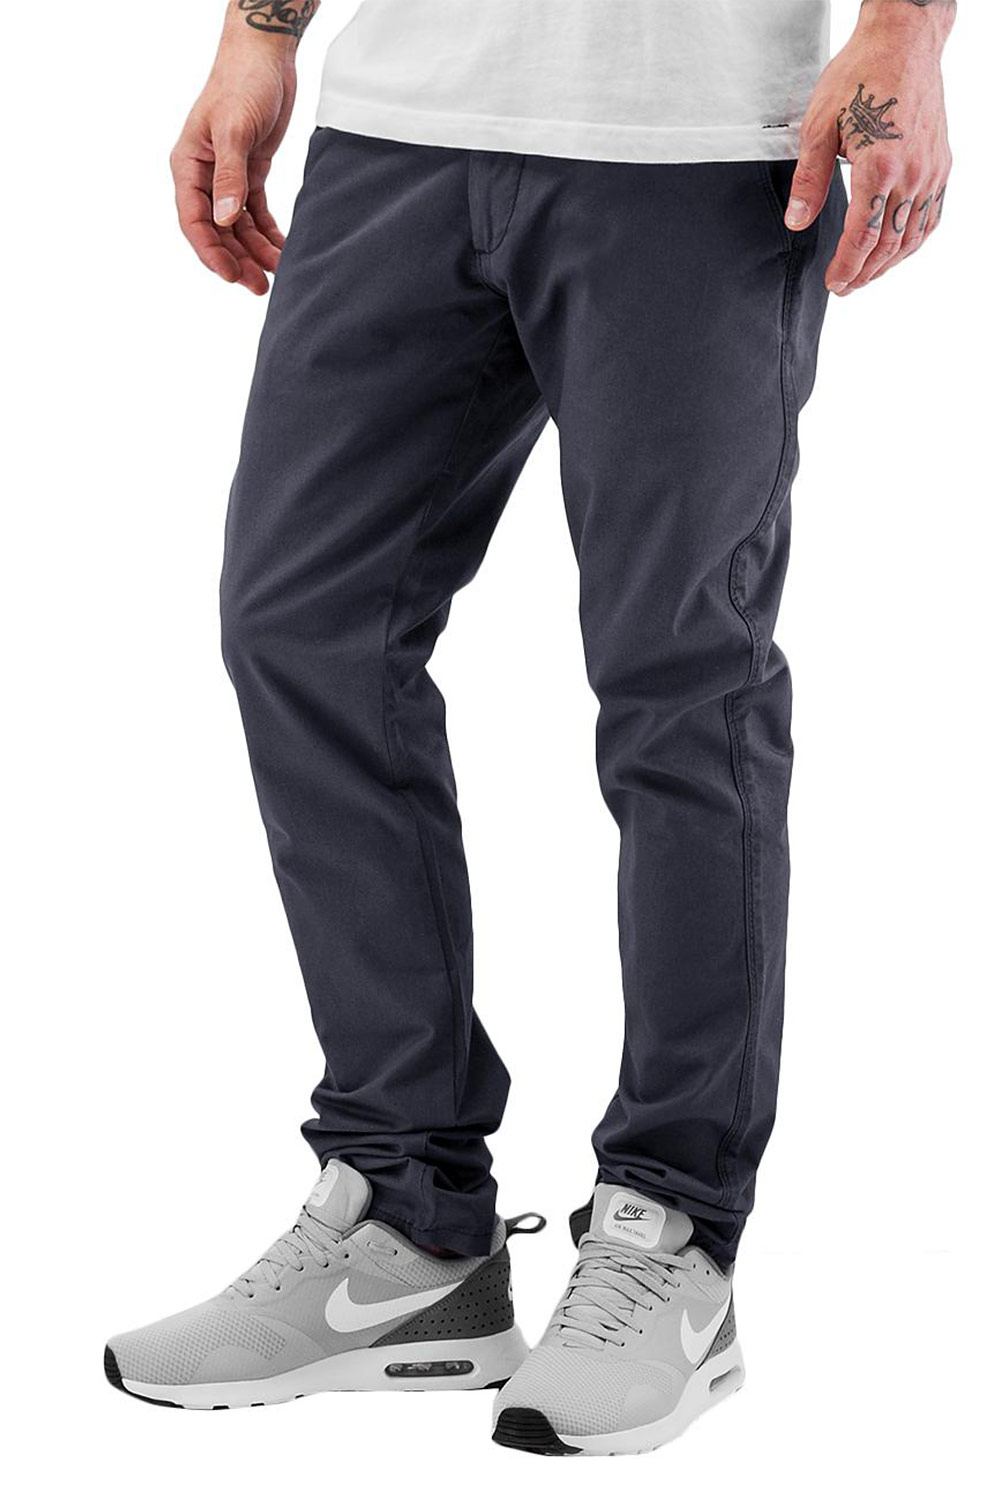 CAZZY CLANG Basic Chino Pants Dark Grey auf oboy.de